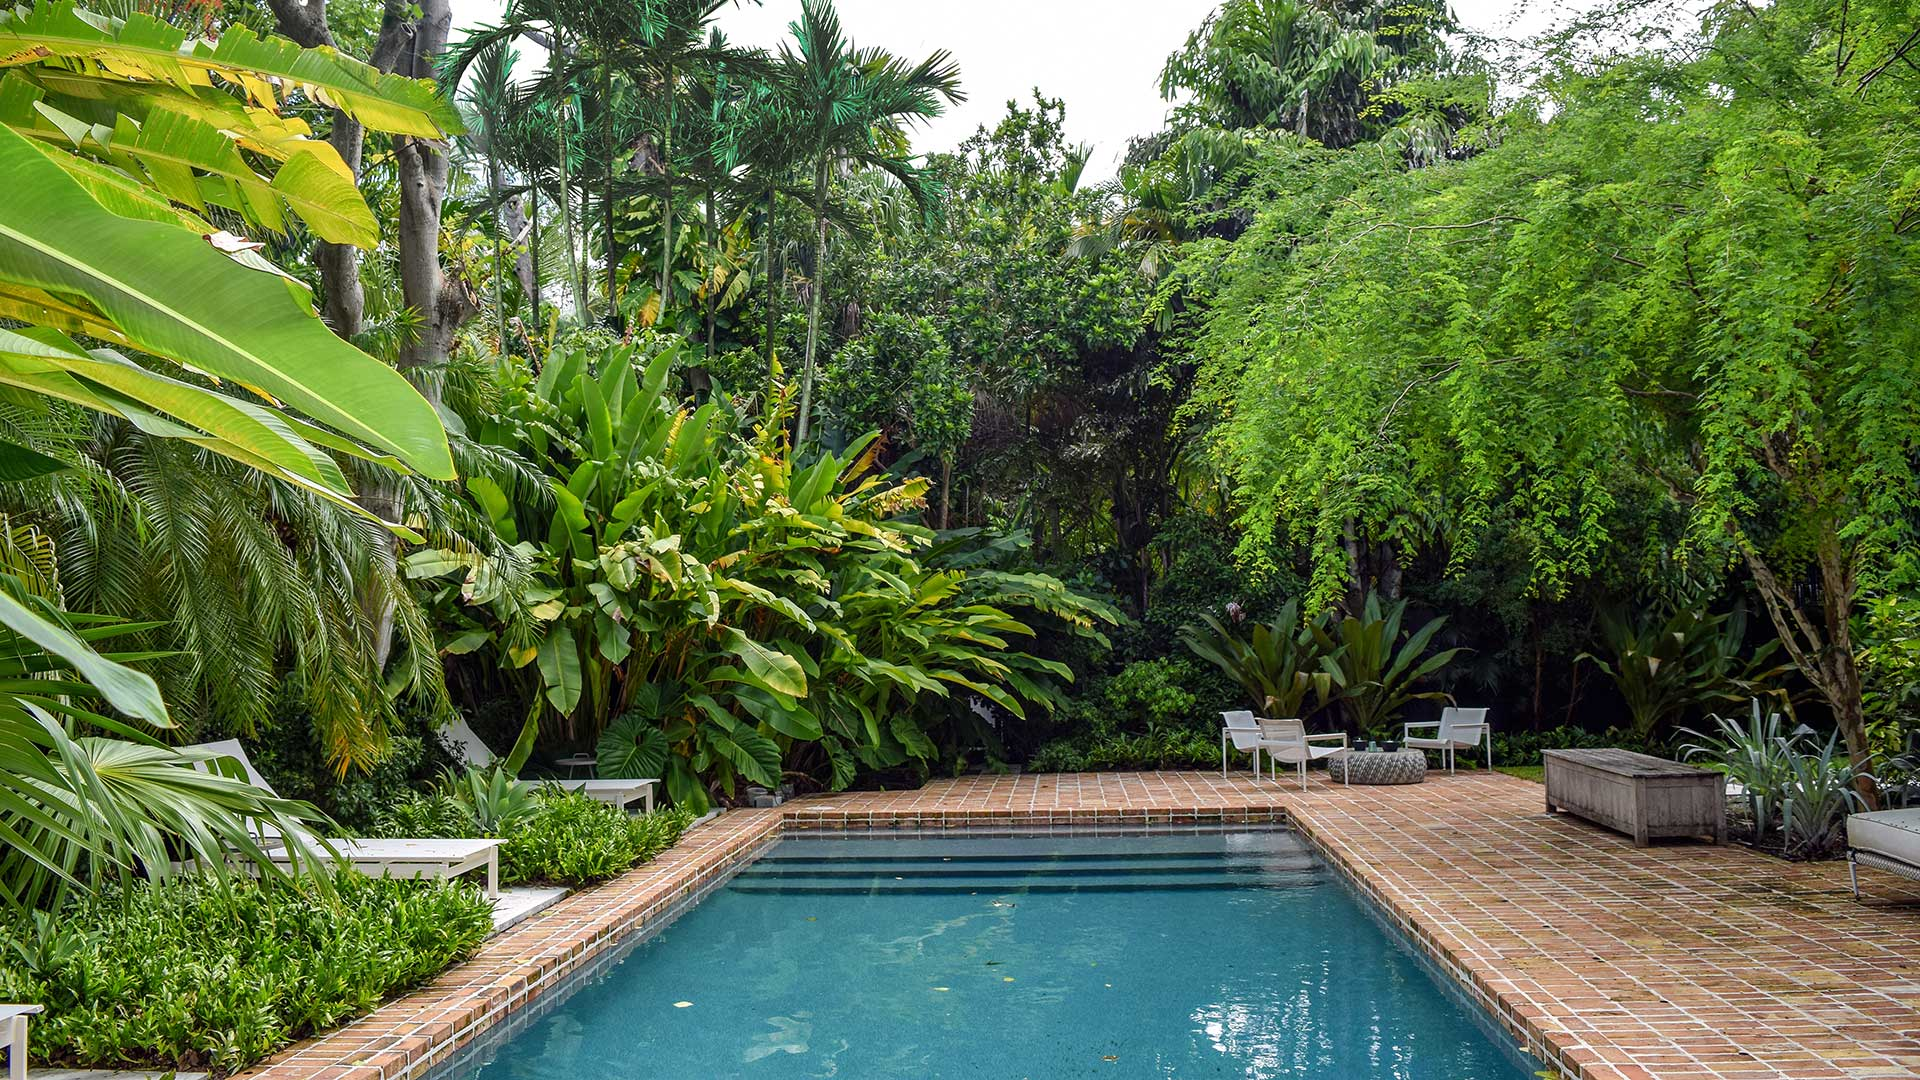 hammock garden showing the pool area with landscape plantation surrounding